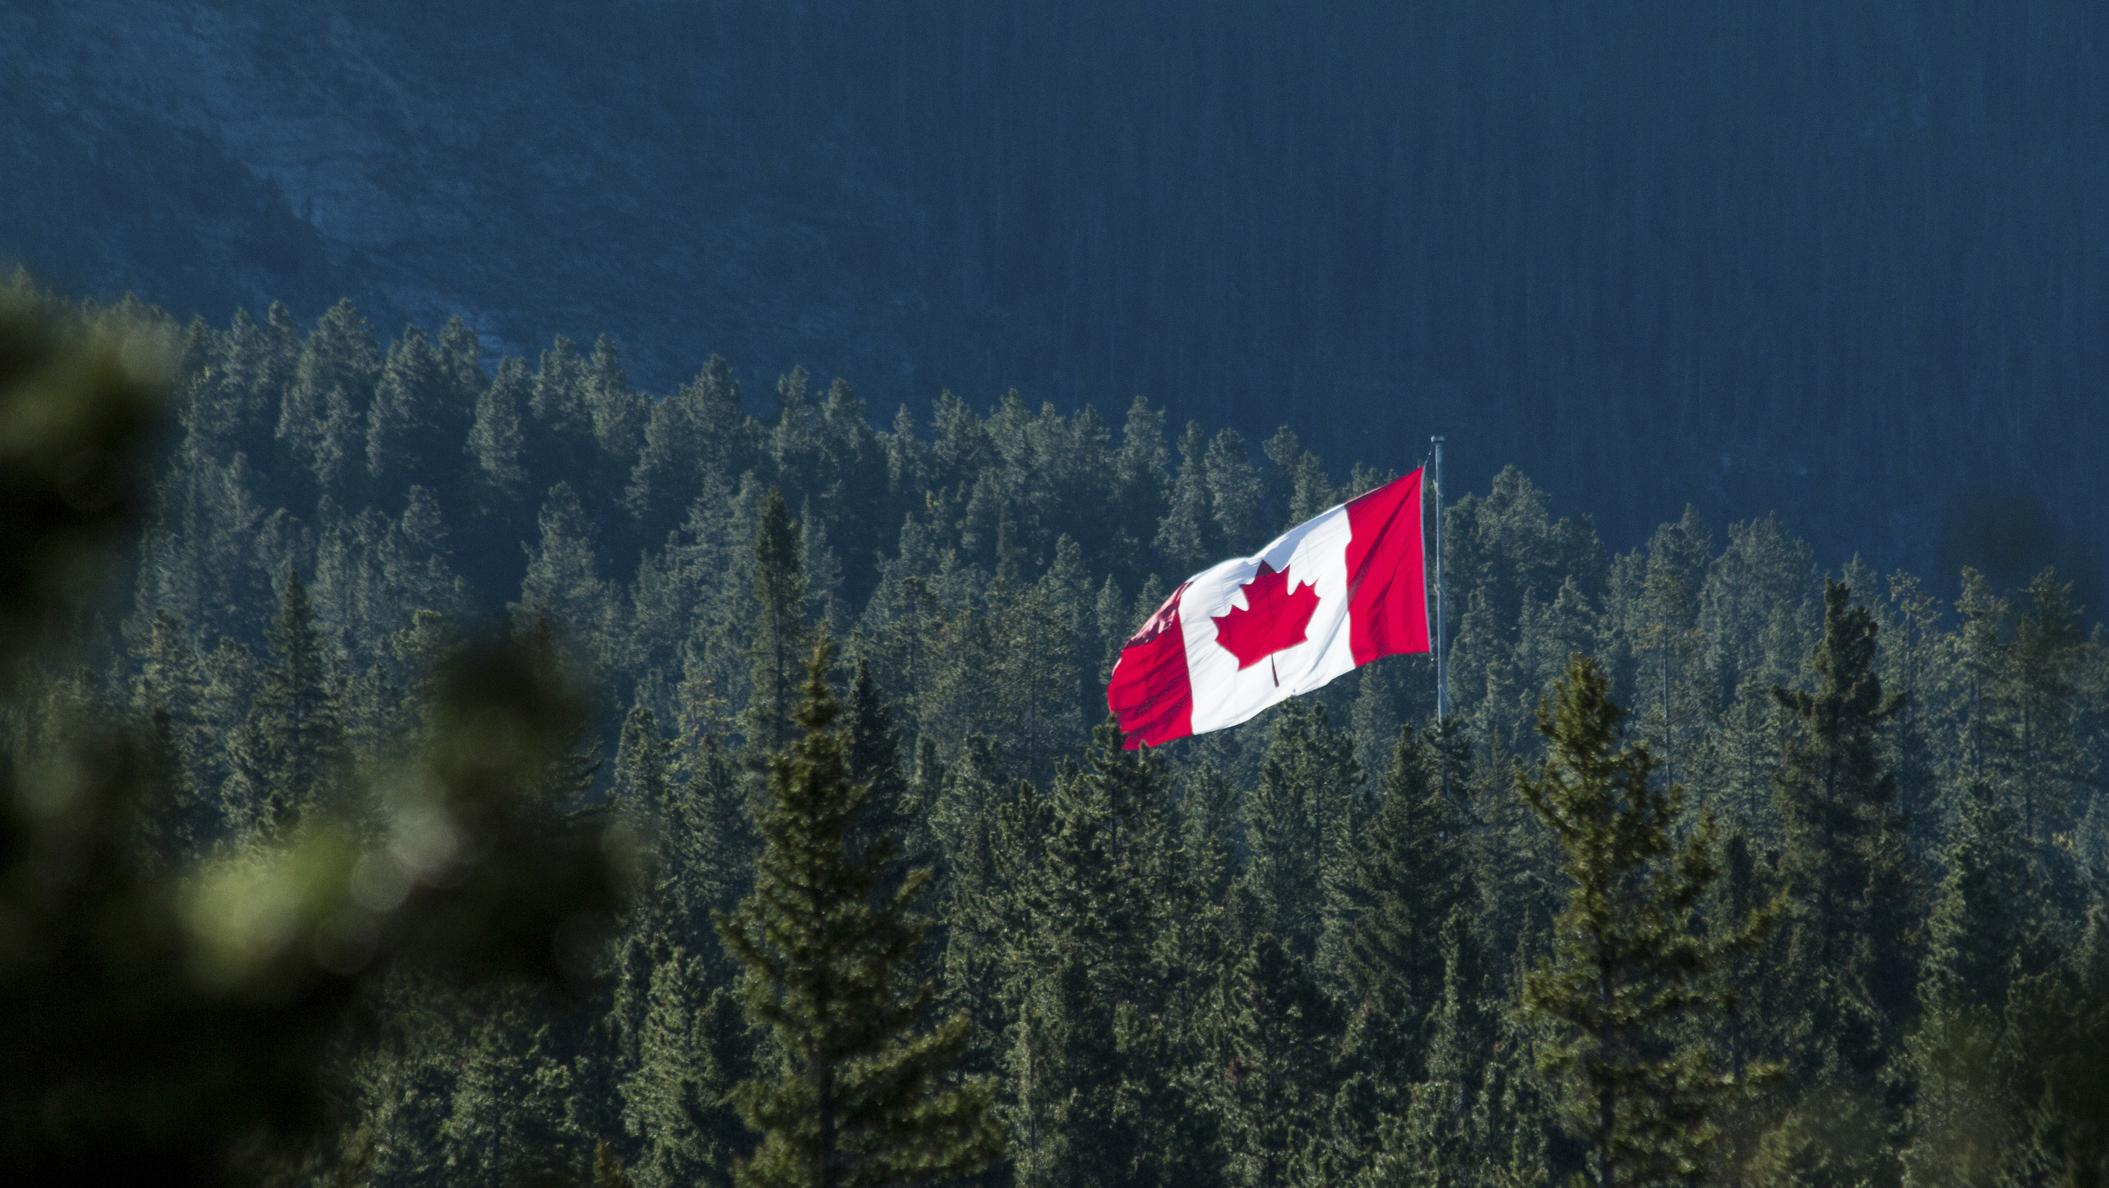 Canadian Flag in Forest